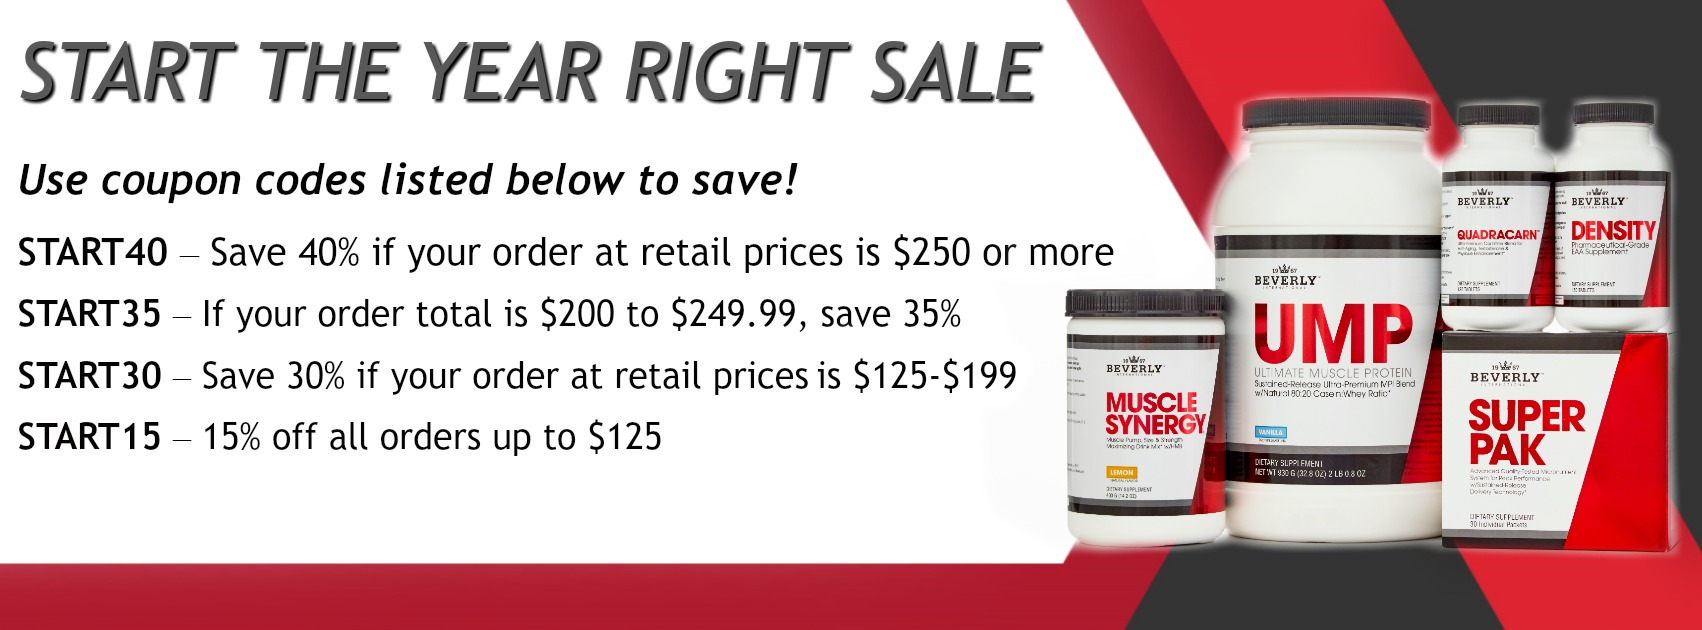 start-the-year-right-sale-2019-webstore-banner-new-2.12.jpg